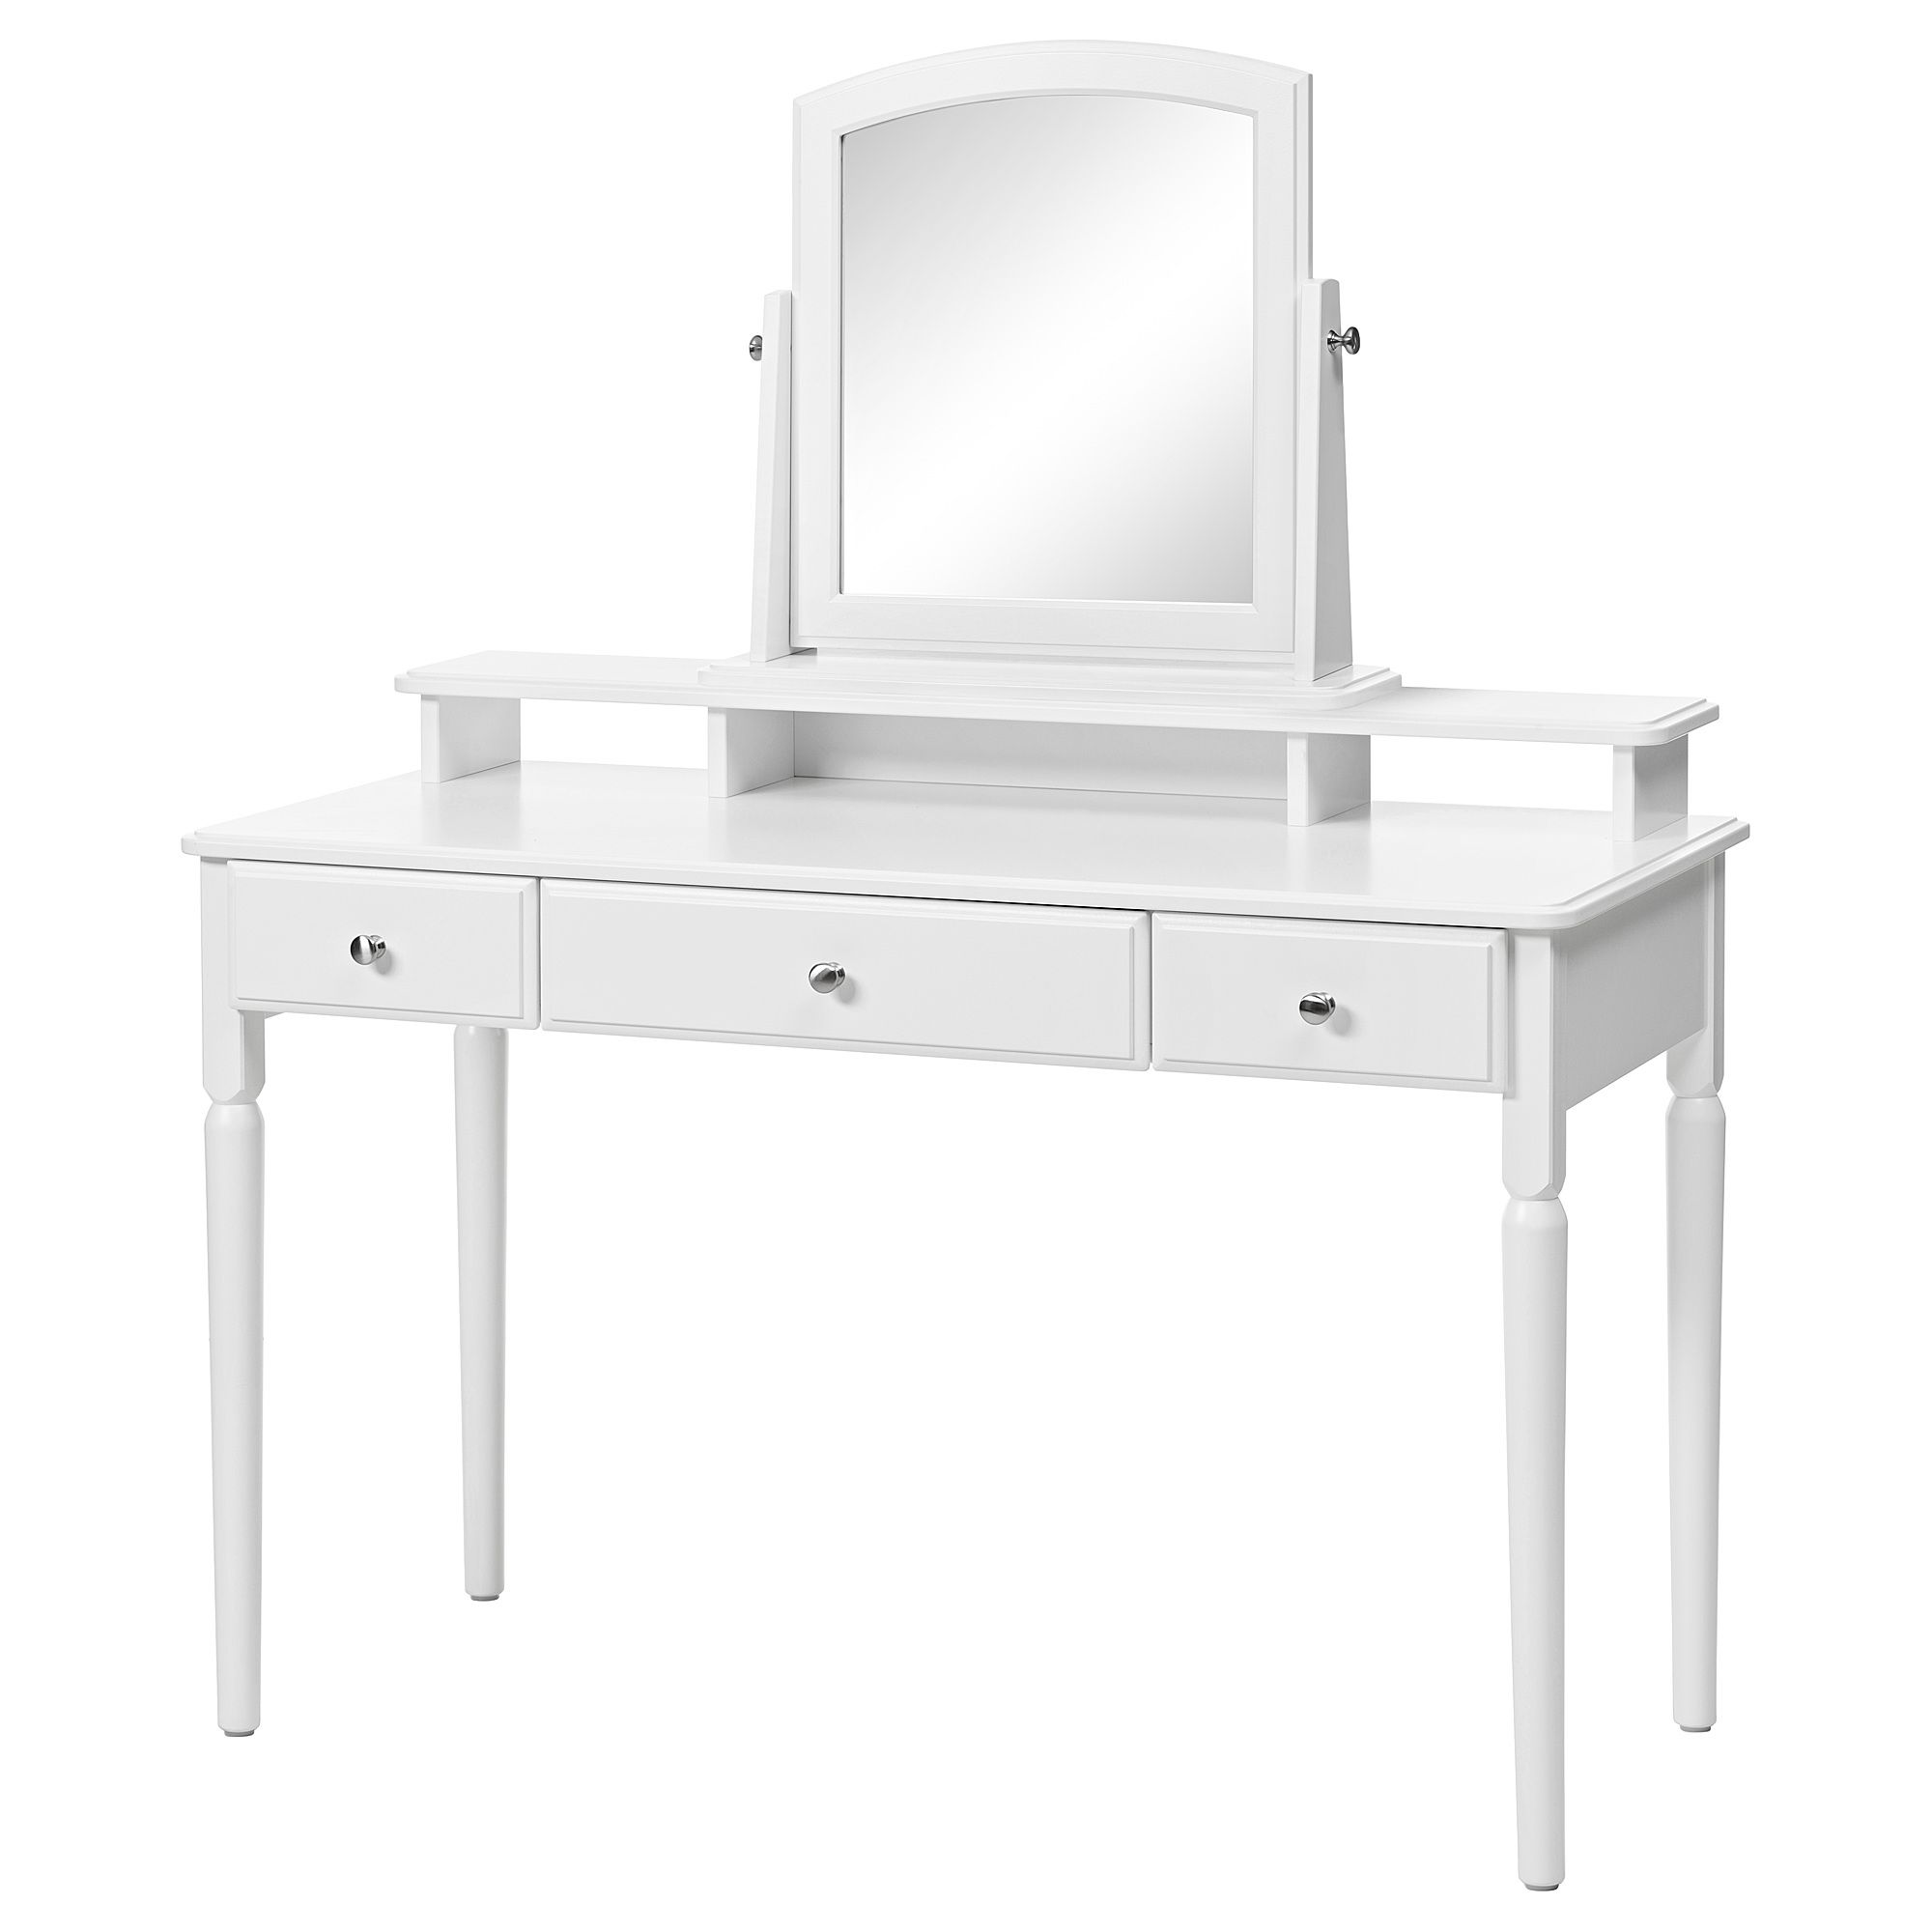 Ikea Tyssedal Dressing Table With Mirror White In 2019